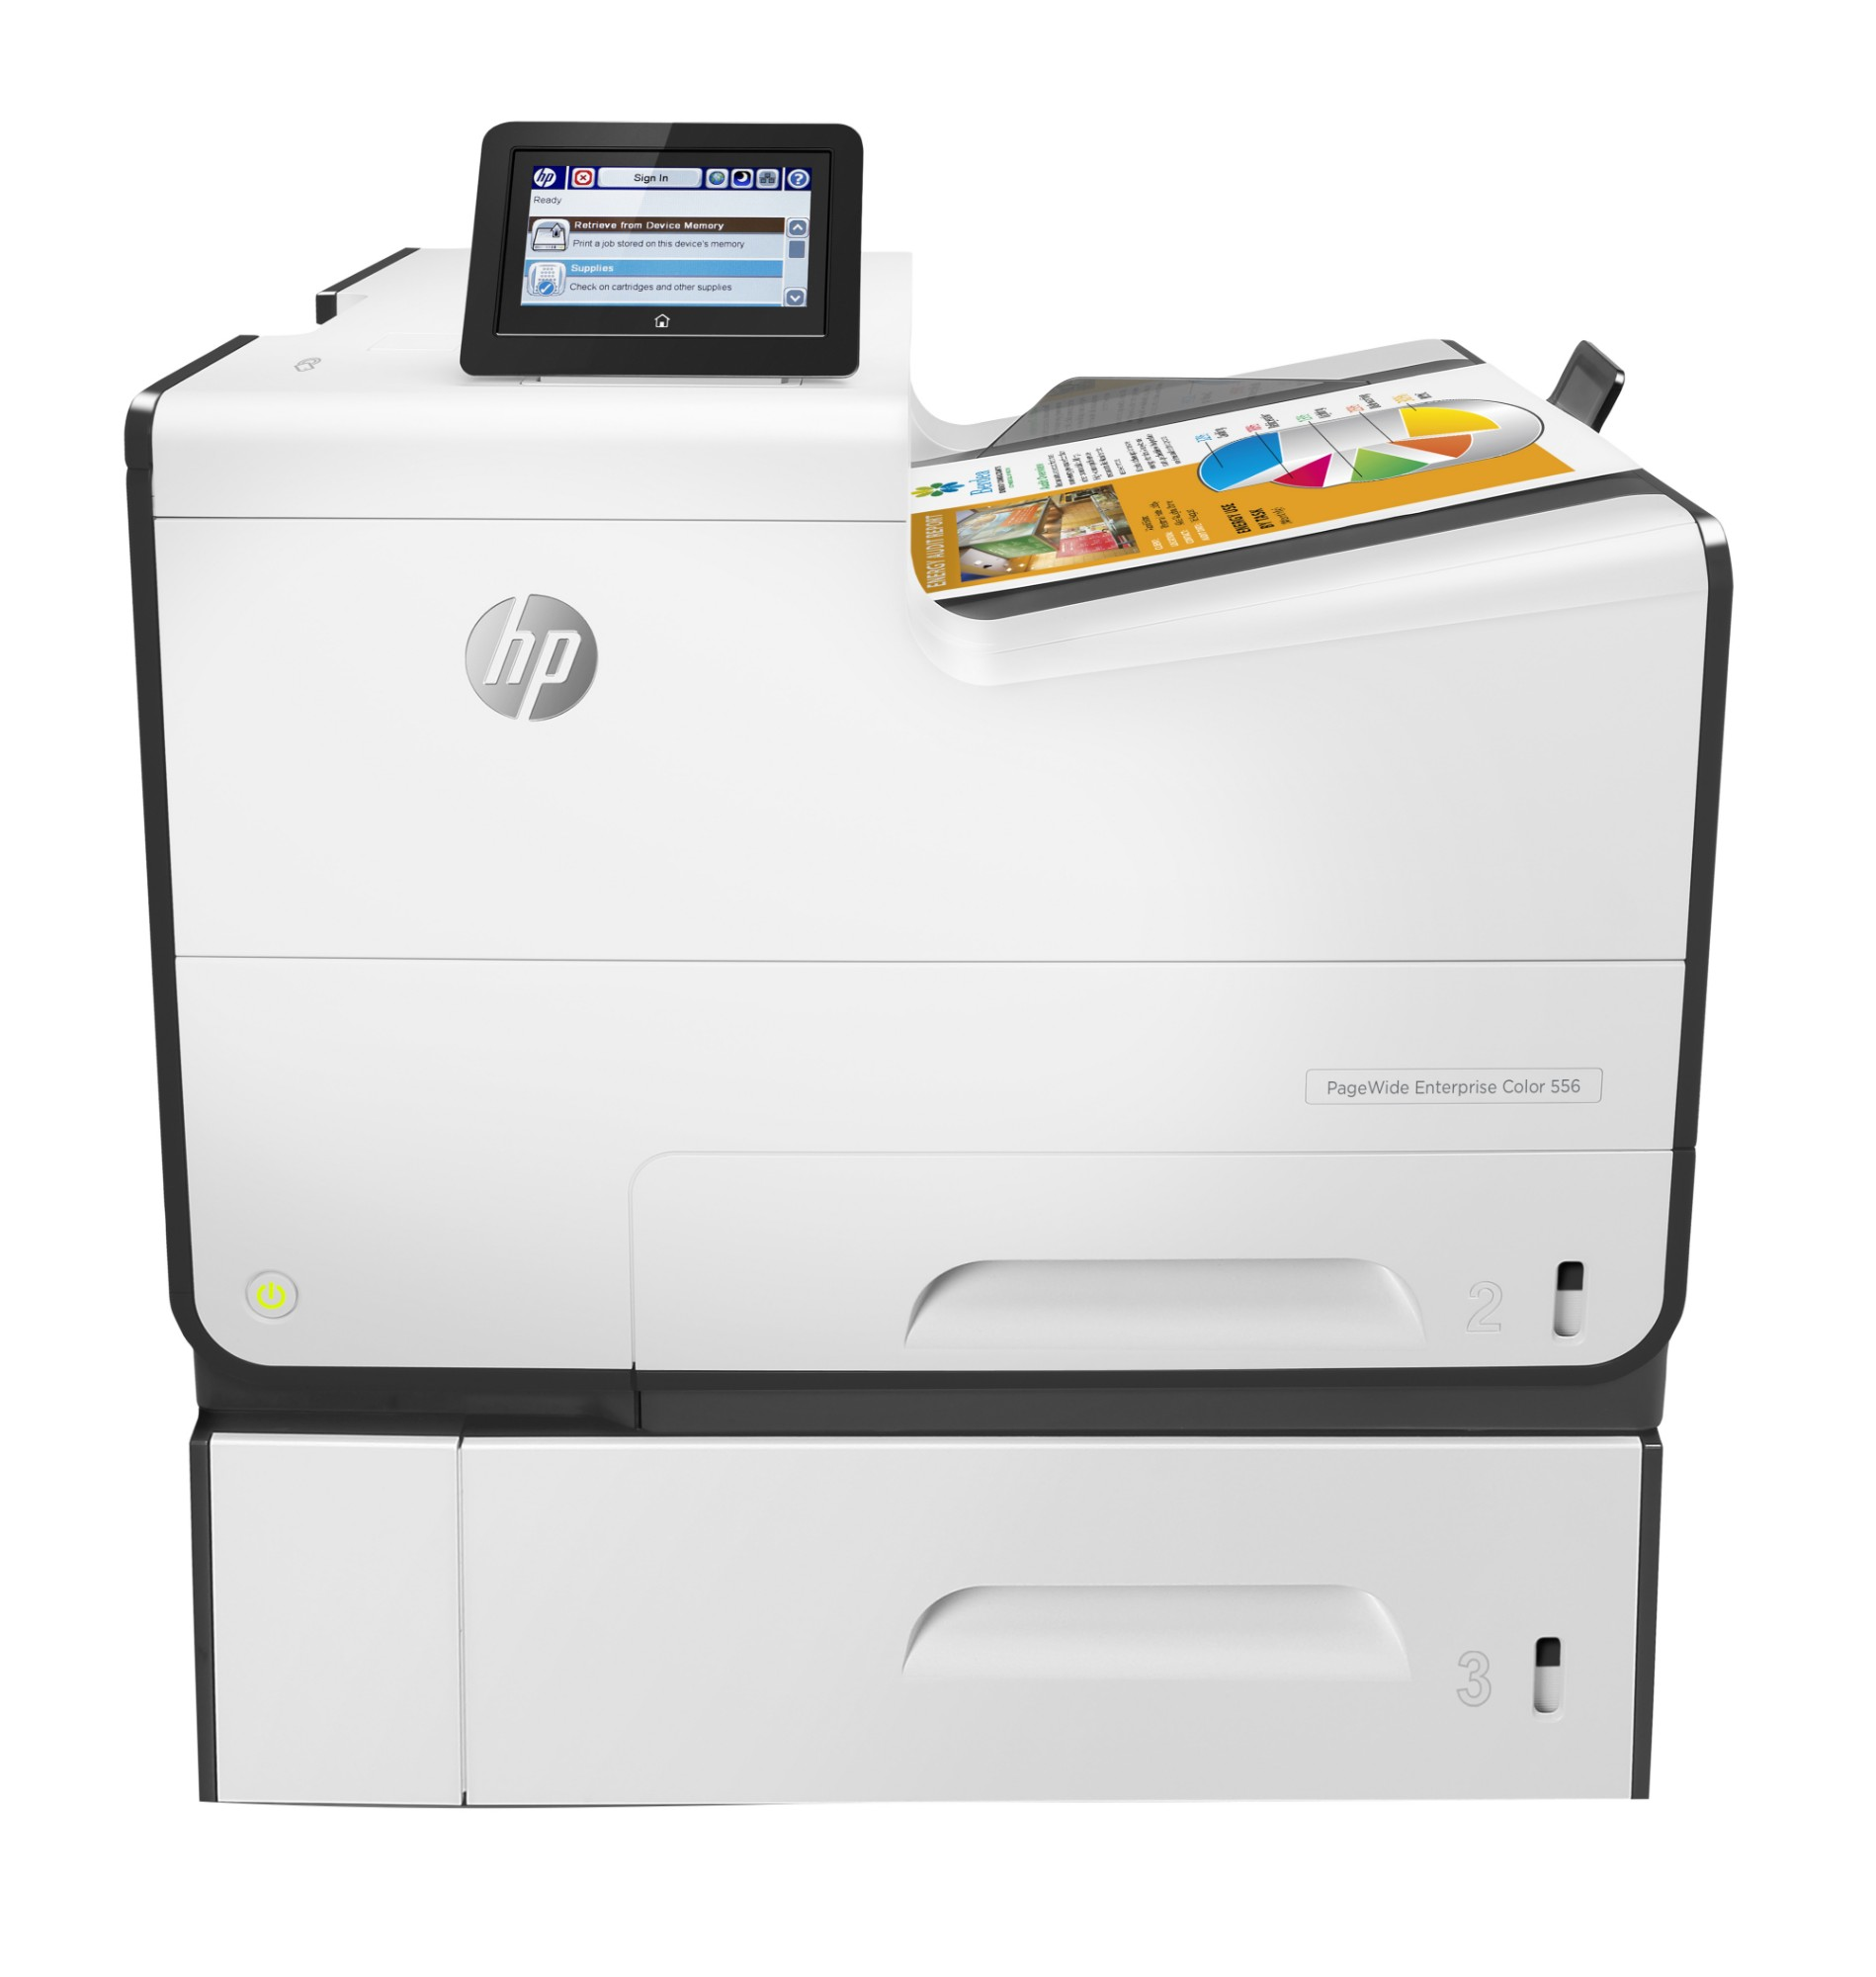 HPSHOPPING PRINTER DRIVERS FOR WINDOWS DOWNLOAD